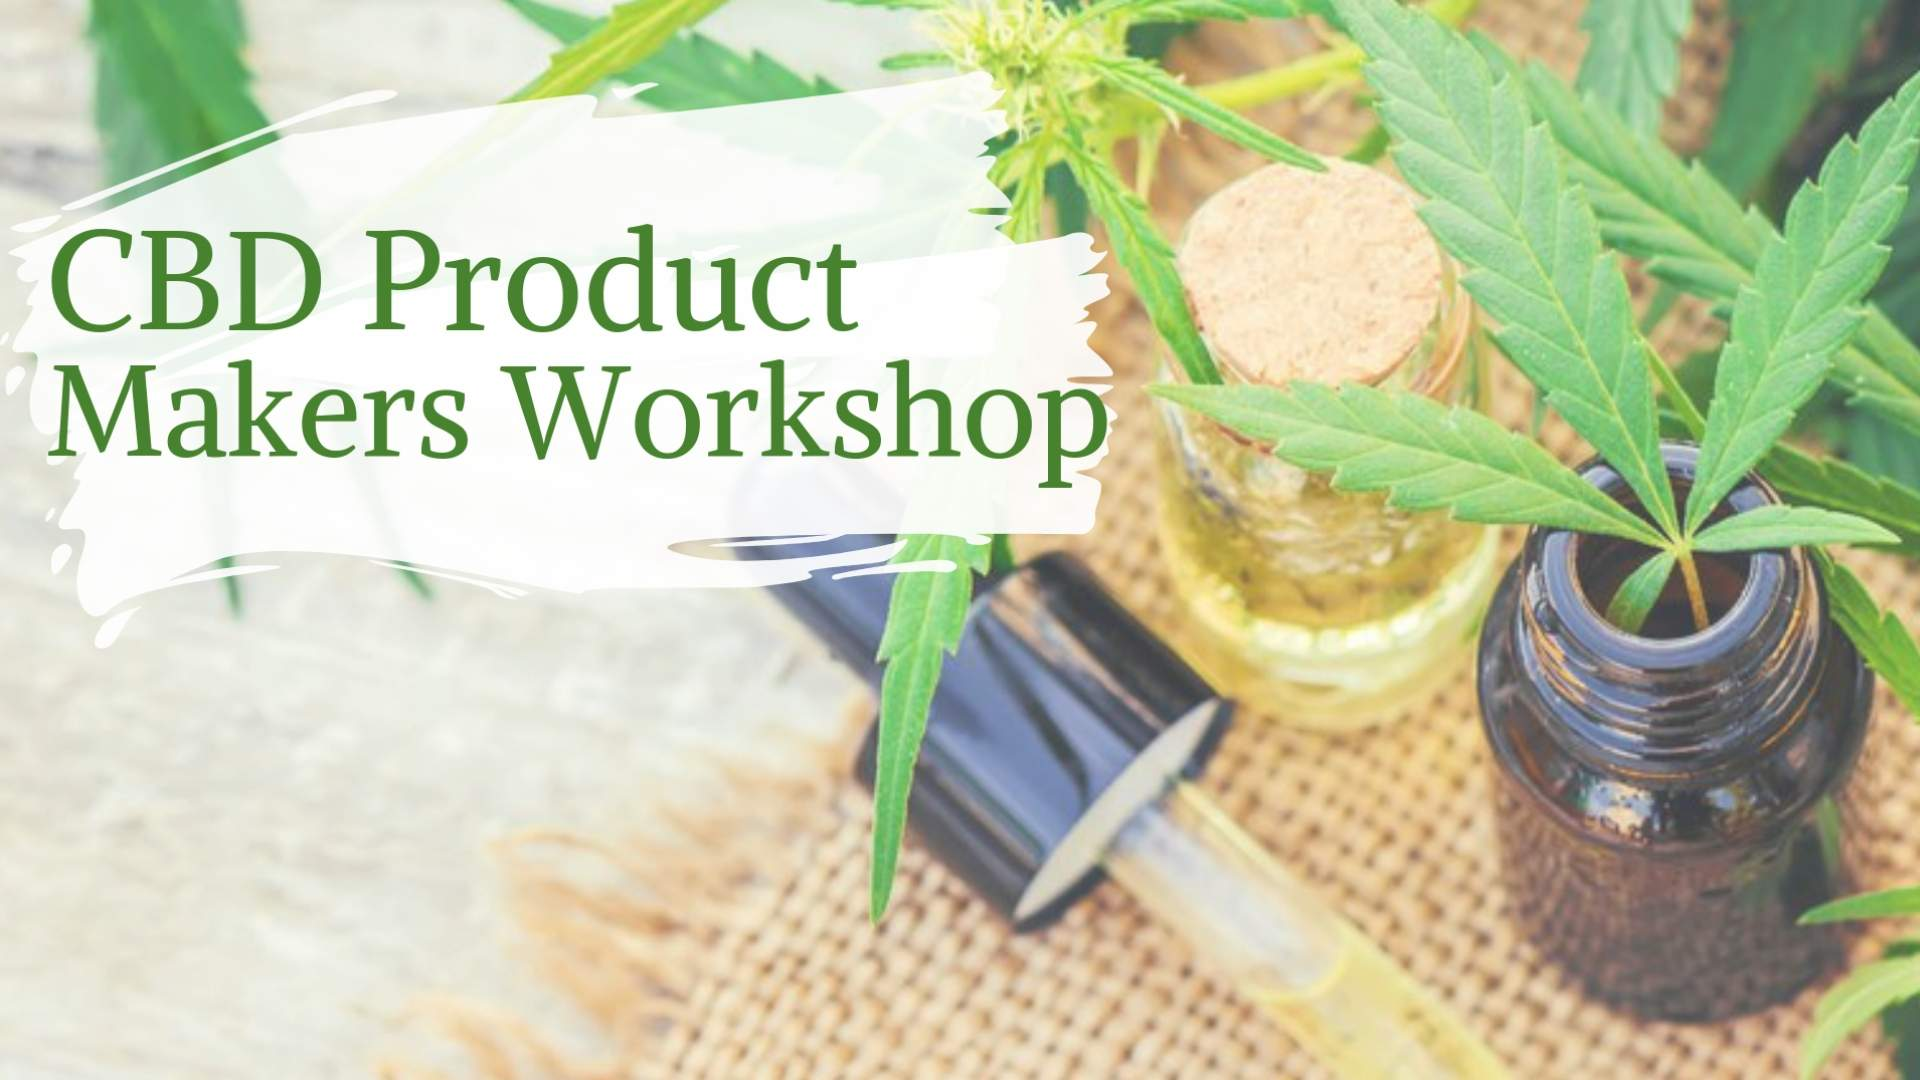 CBD Product Makers Workshop